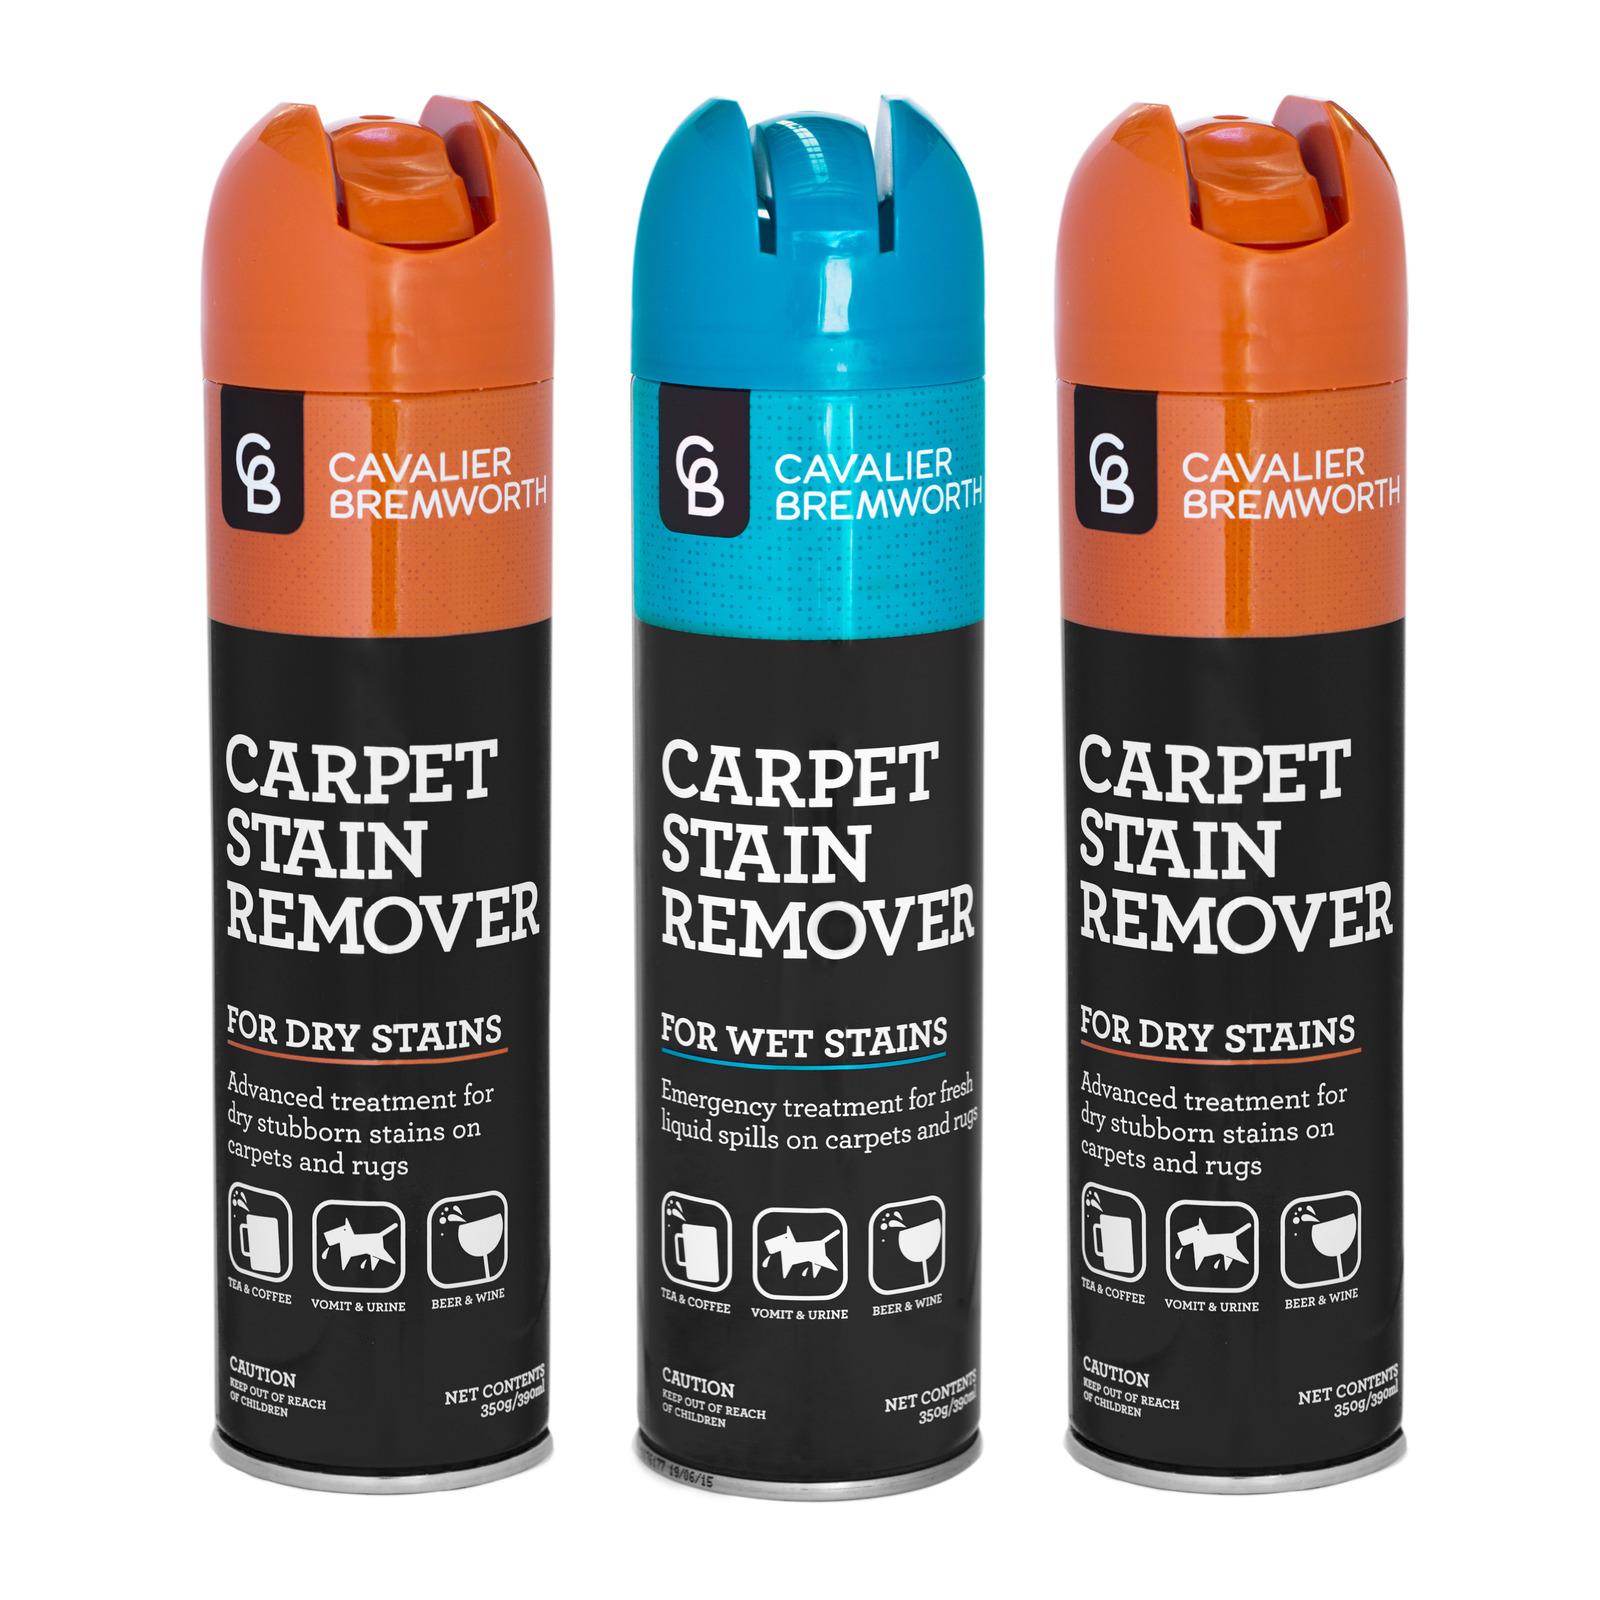 ecomist systems pty ltd pack of 3 carpet stain remover. Black Bedroom Furniture Sets. Home Design Ideas